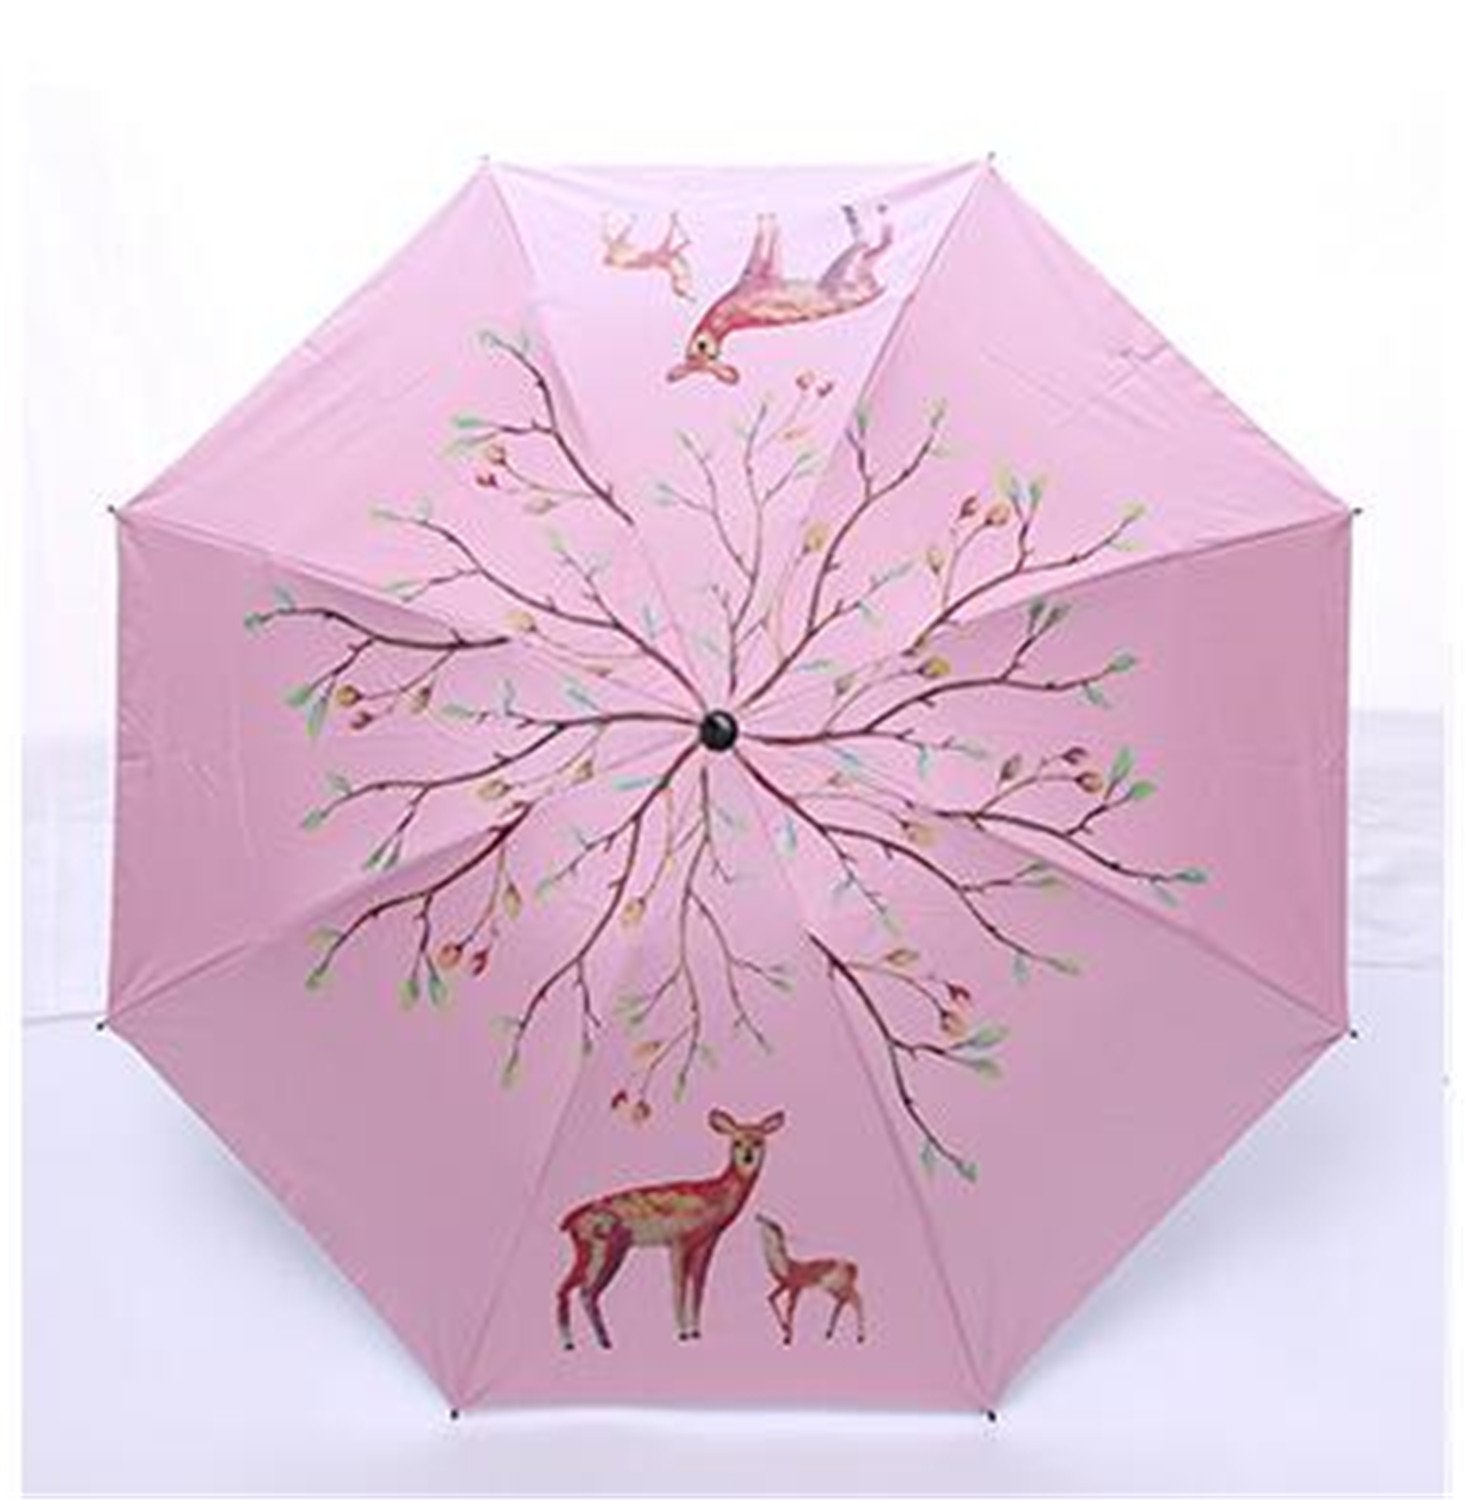 Amazon.com : QIANNVSHEN Deer Sunny Sun Umbrella Rain Women Animal Elk Umbrella Vinyl Sunscreen Small umbrella Navy Blue : Garden & Outdoor